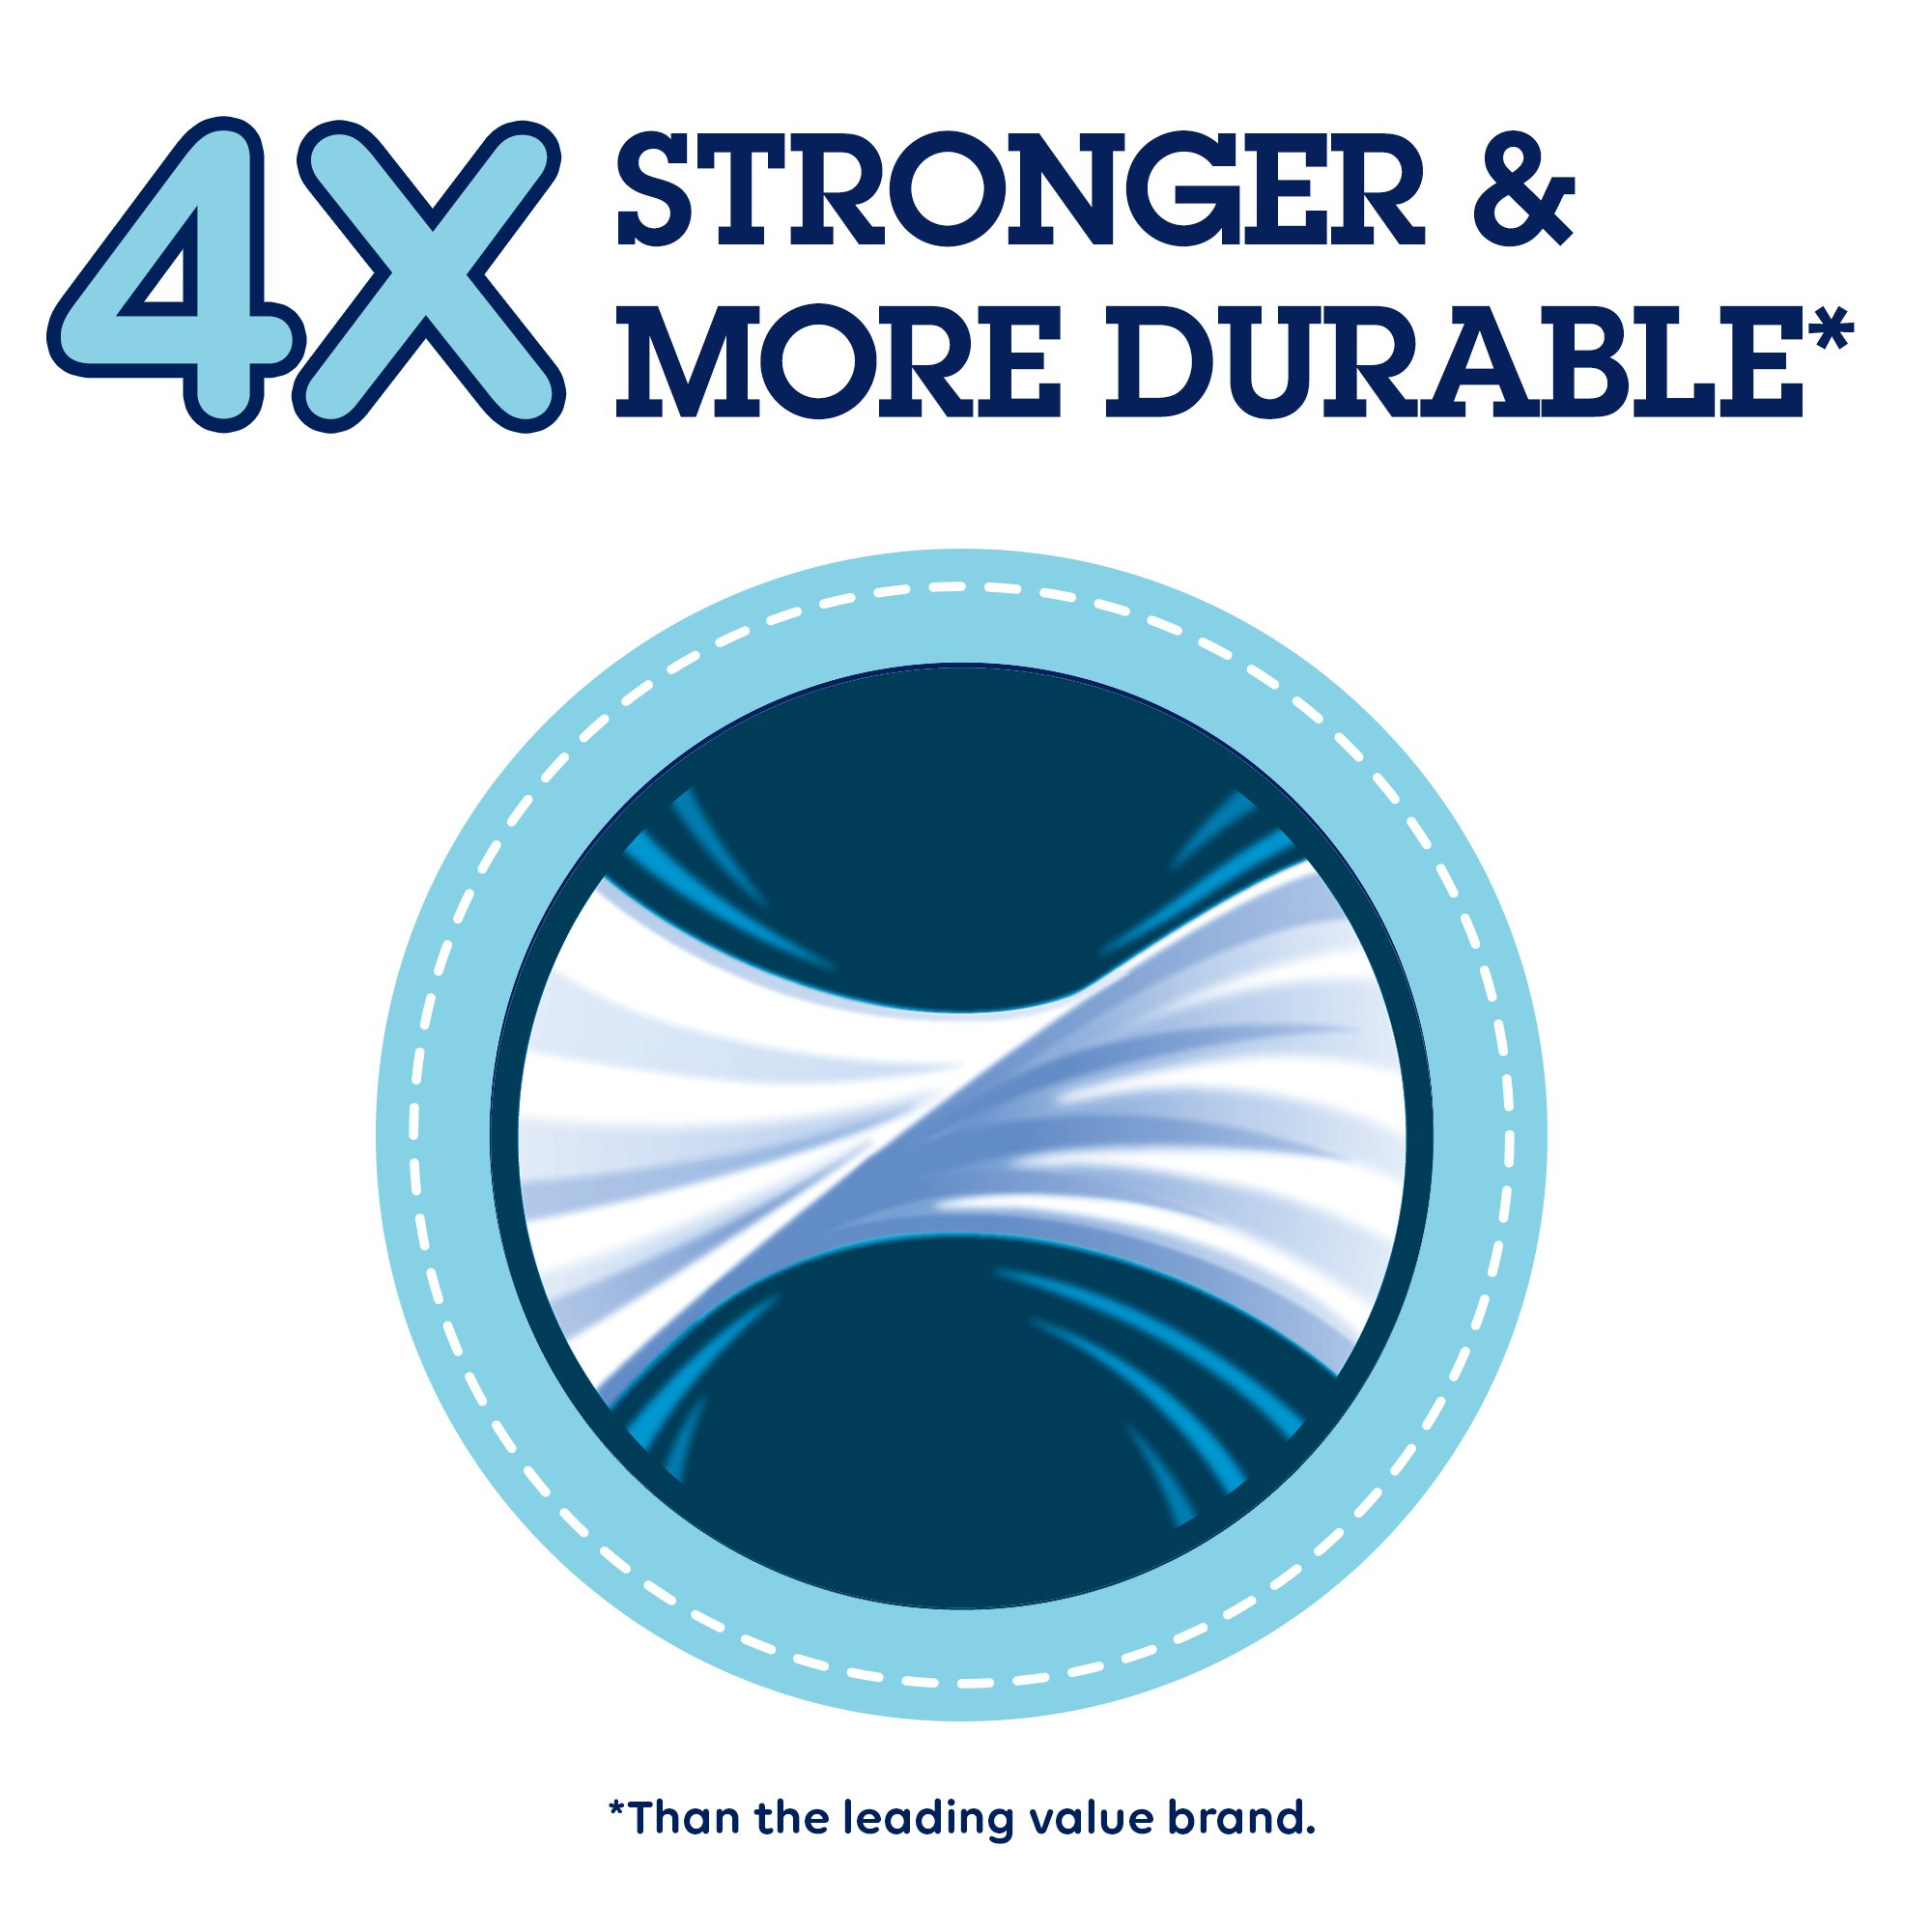 Quilted Northern Ultra Soft & Strong Toilet Paper, 48 Double Rolls, 164 2-Ply Sheets Per Roll by Quilted Northern (Image #6)